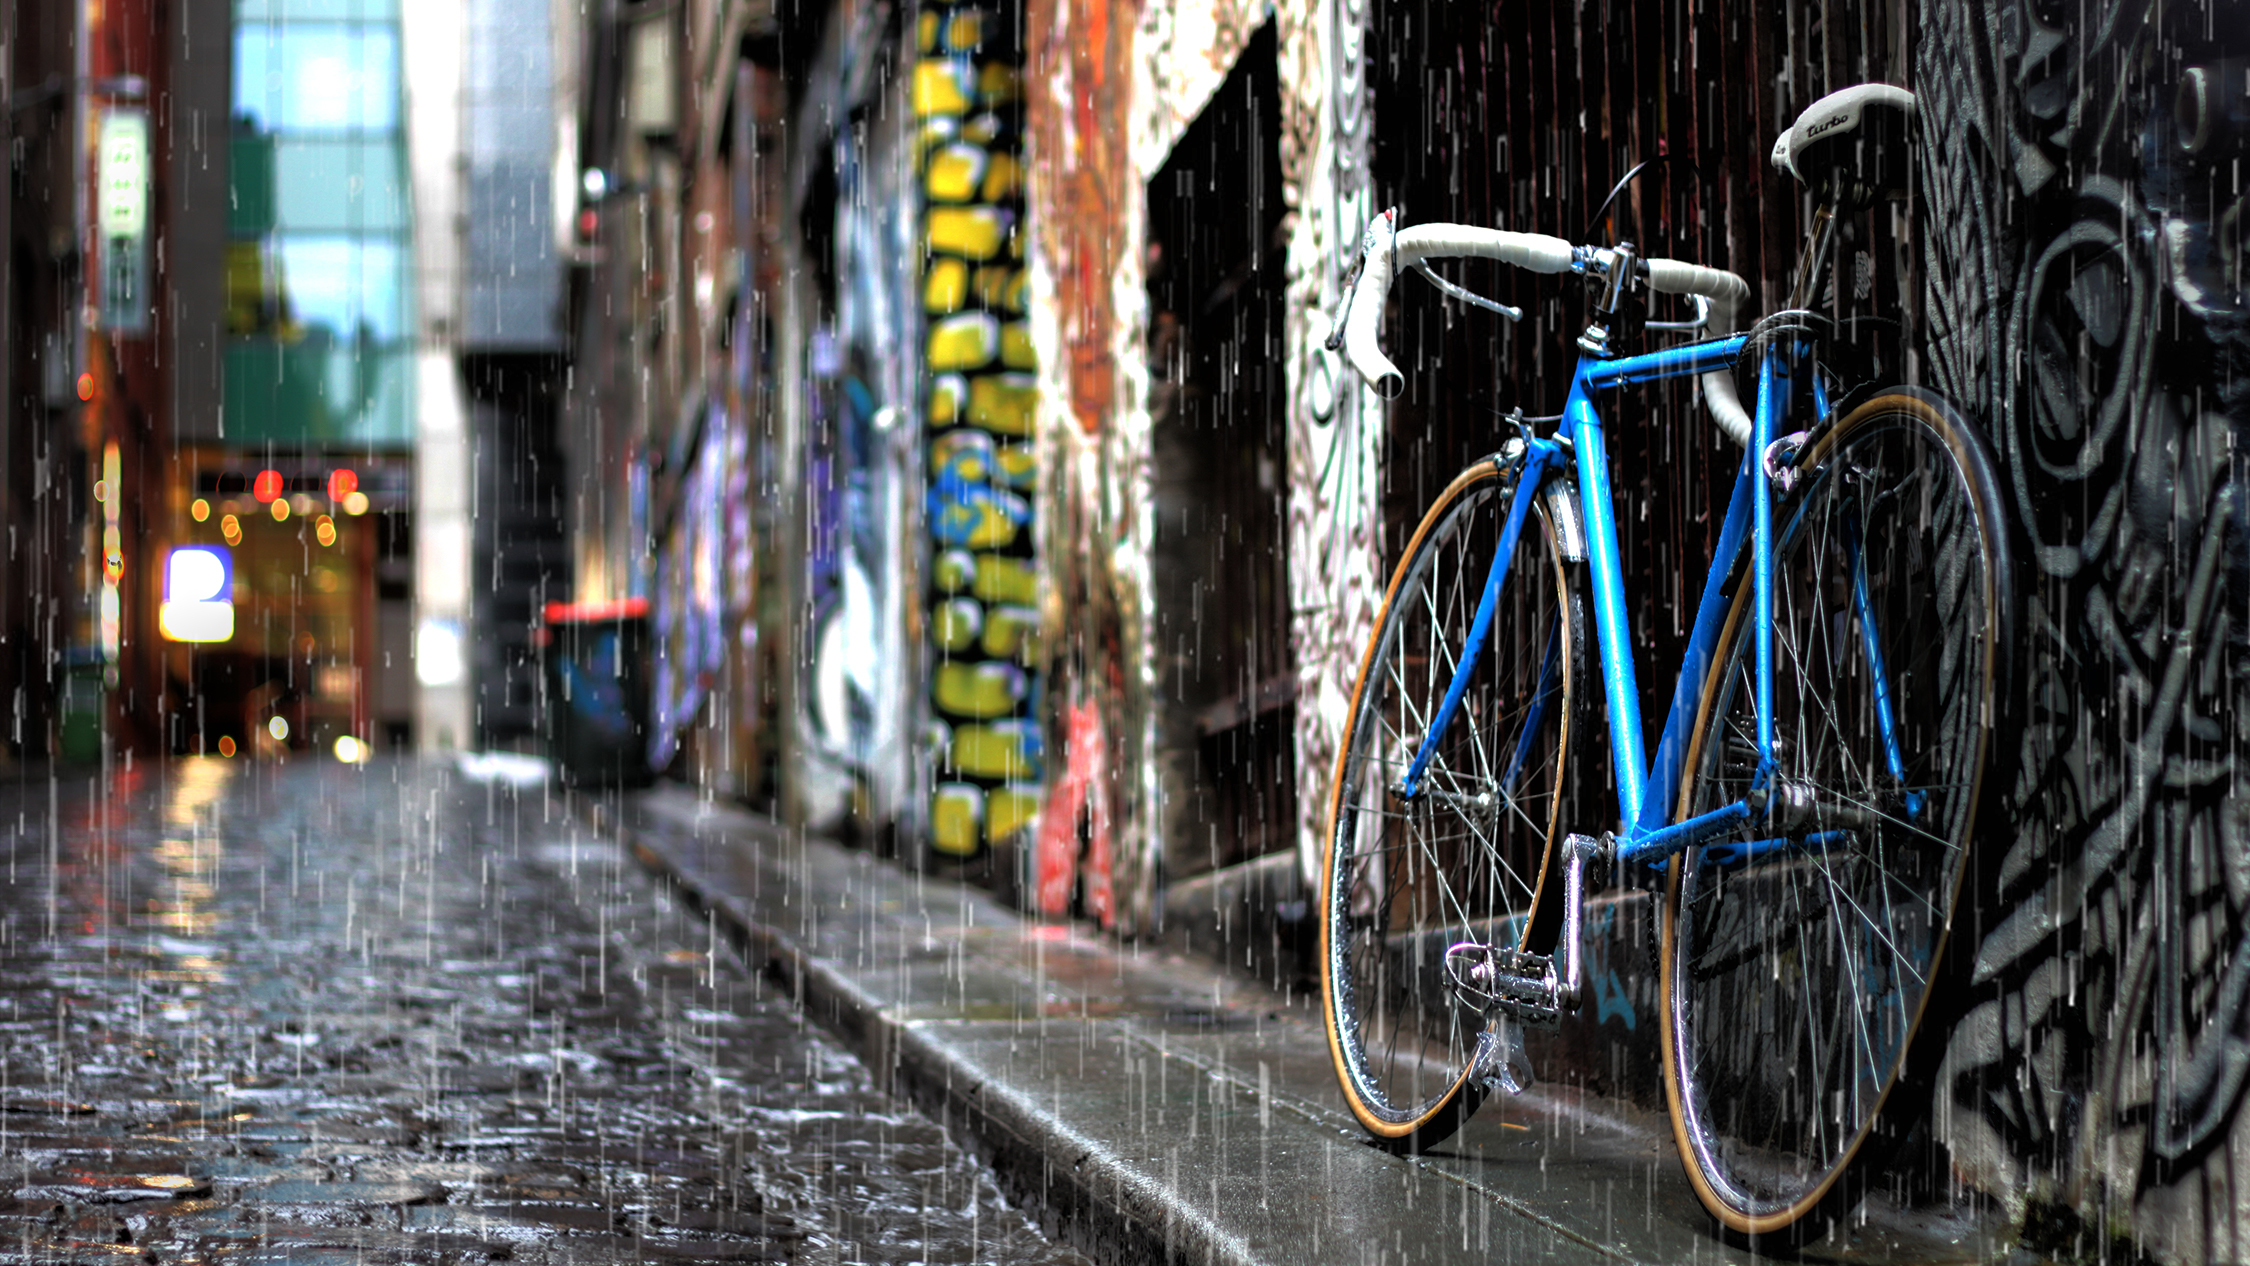 The best rainy day activities in Melbourne